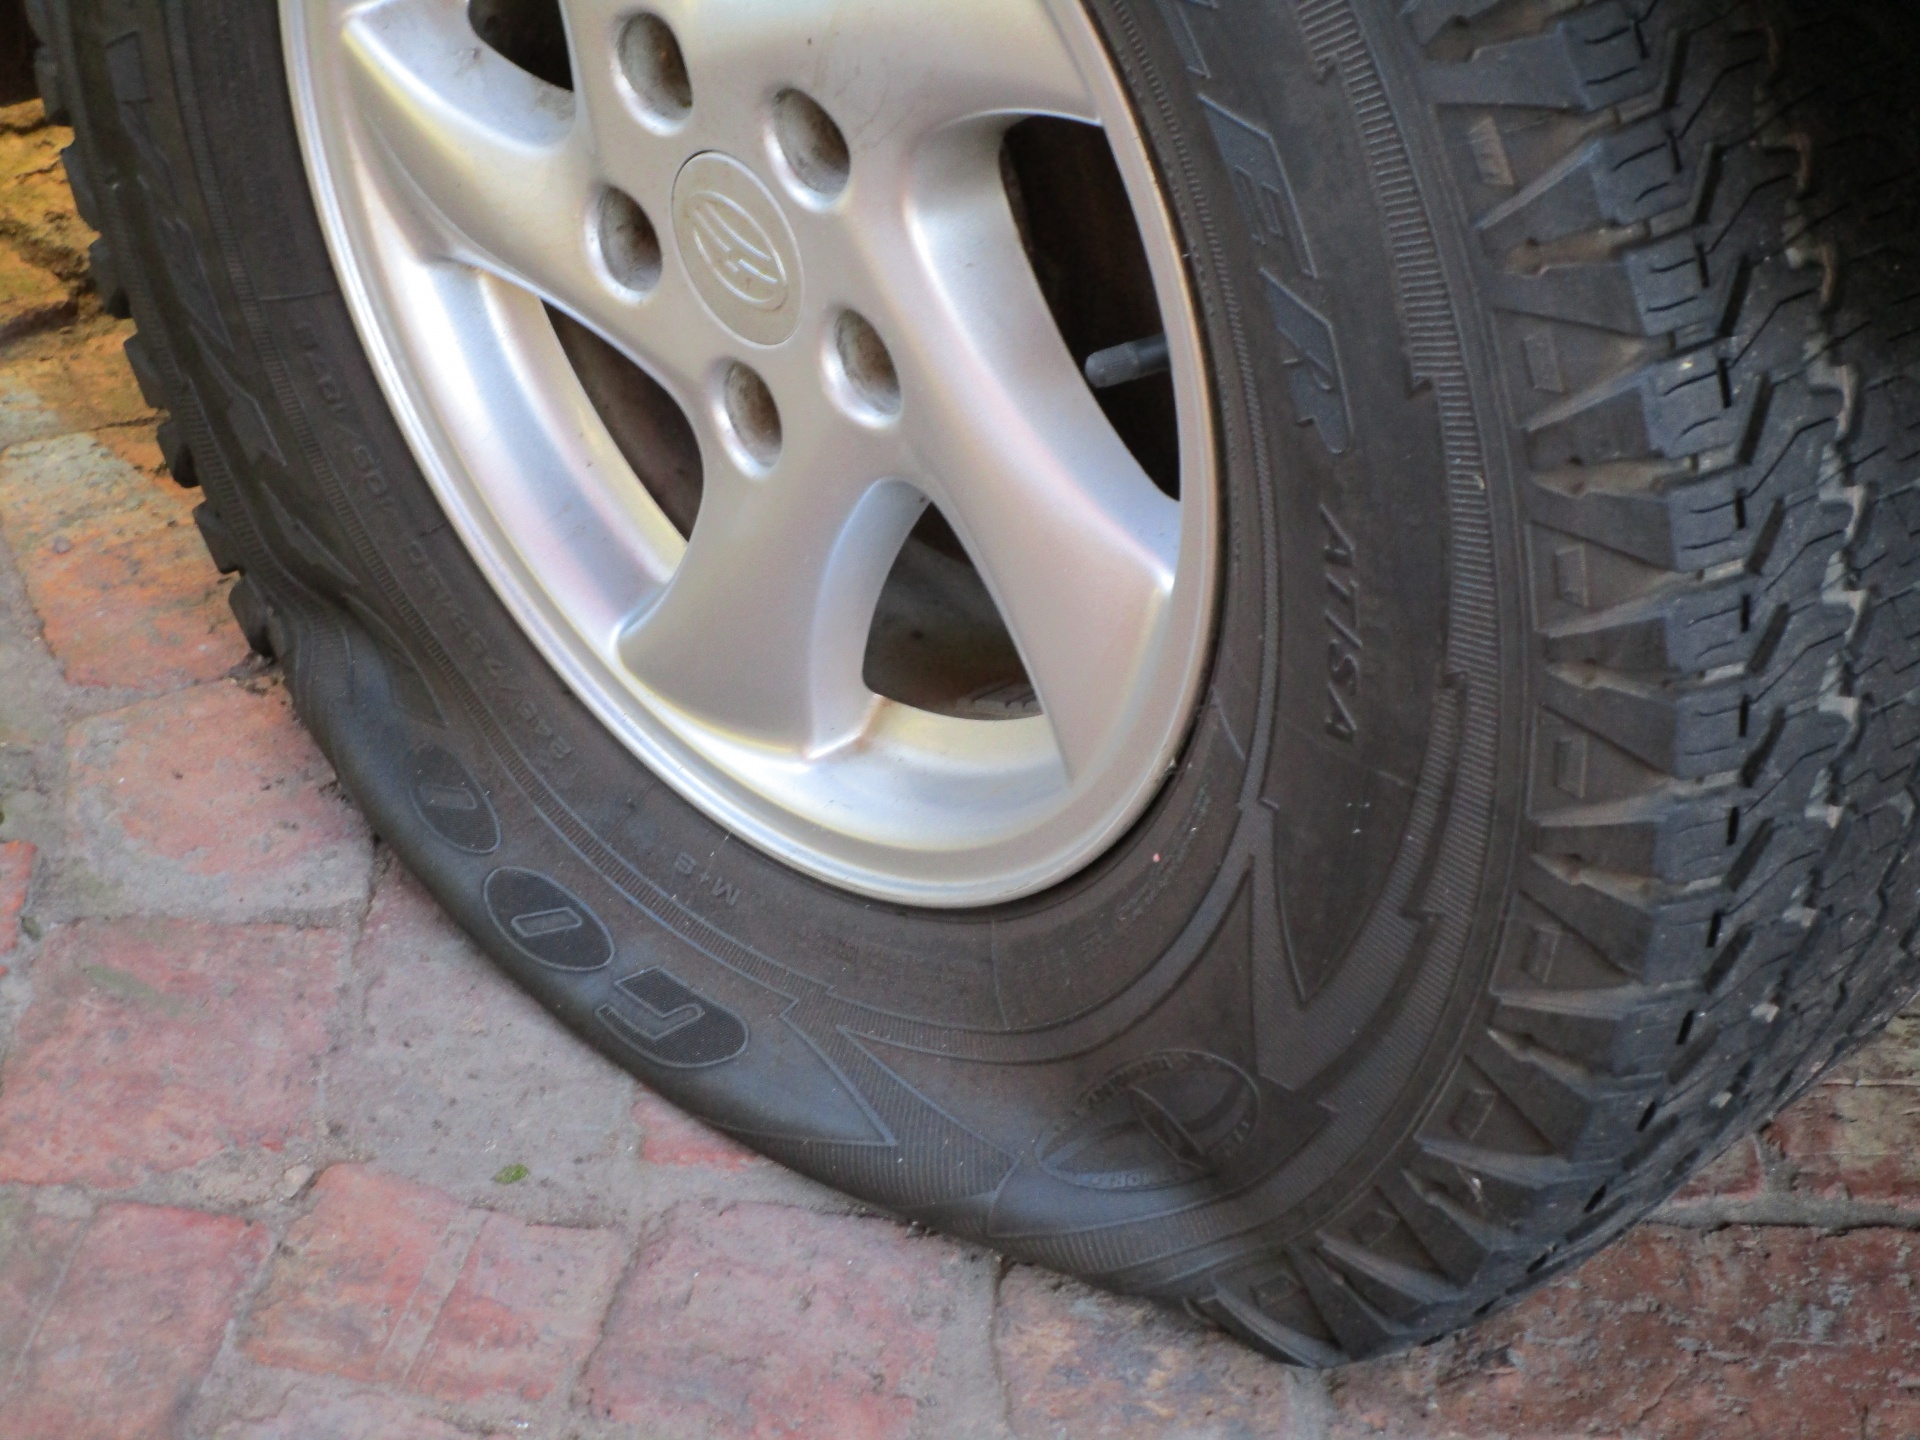 common motoring offences defective tyres